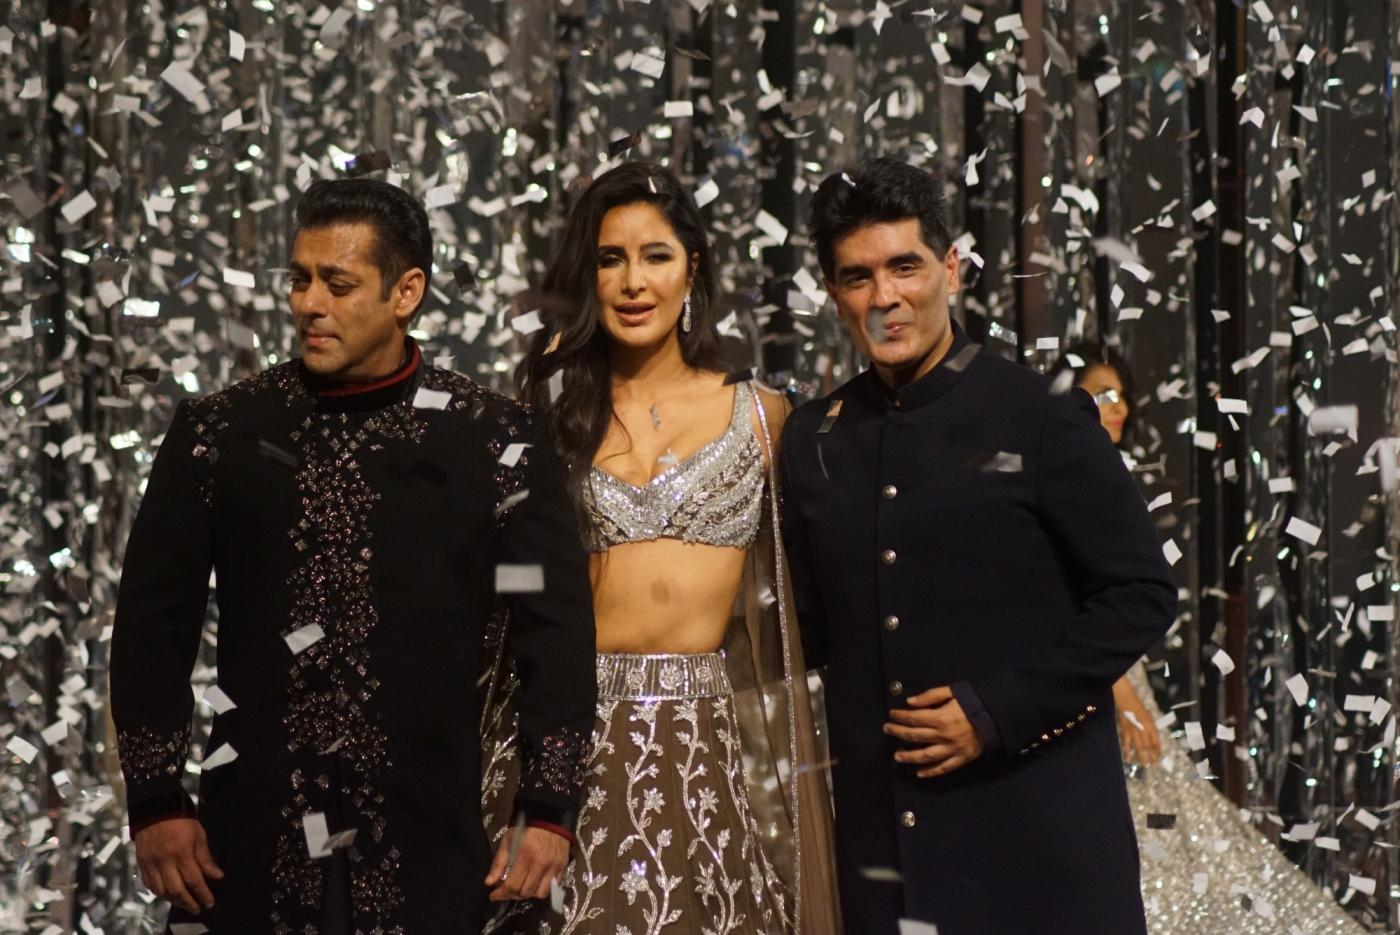 Mumbai: Actors Salman Khan and Katrina Kaif walk on the ramp as show-stoppers for Fashion designer Manish Malhotra's Haute Couture 2018 show at JW Marriot in Mumbai on Aug 1, 2018. (Photo: IANS) by .